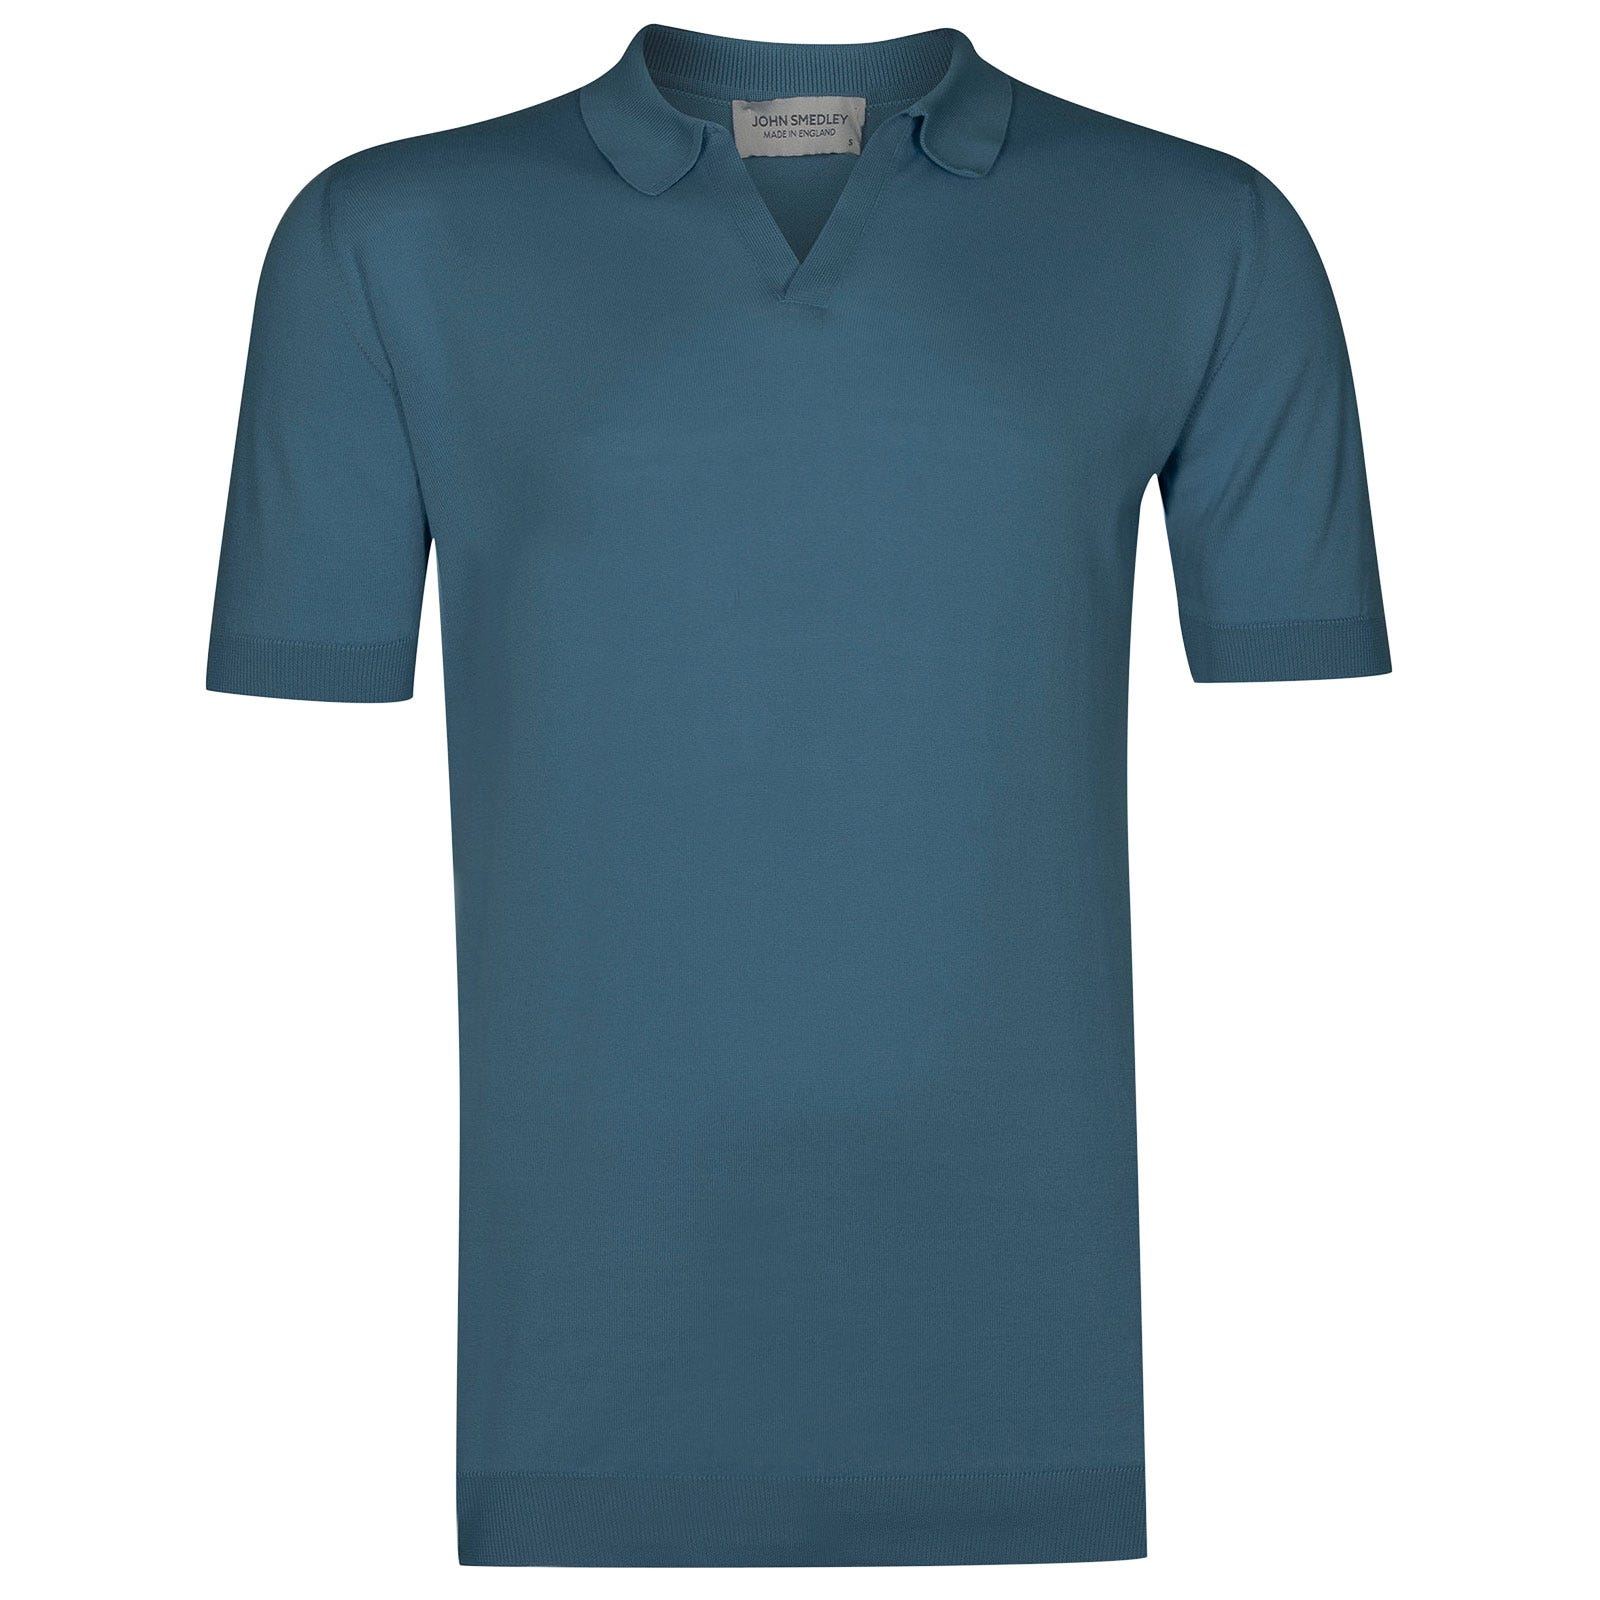 John Smedley Noah Sea Island Cotton Shirt in Bias Blue-XXL